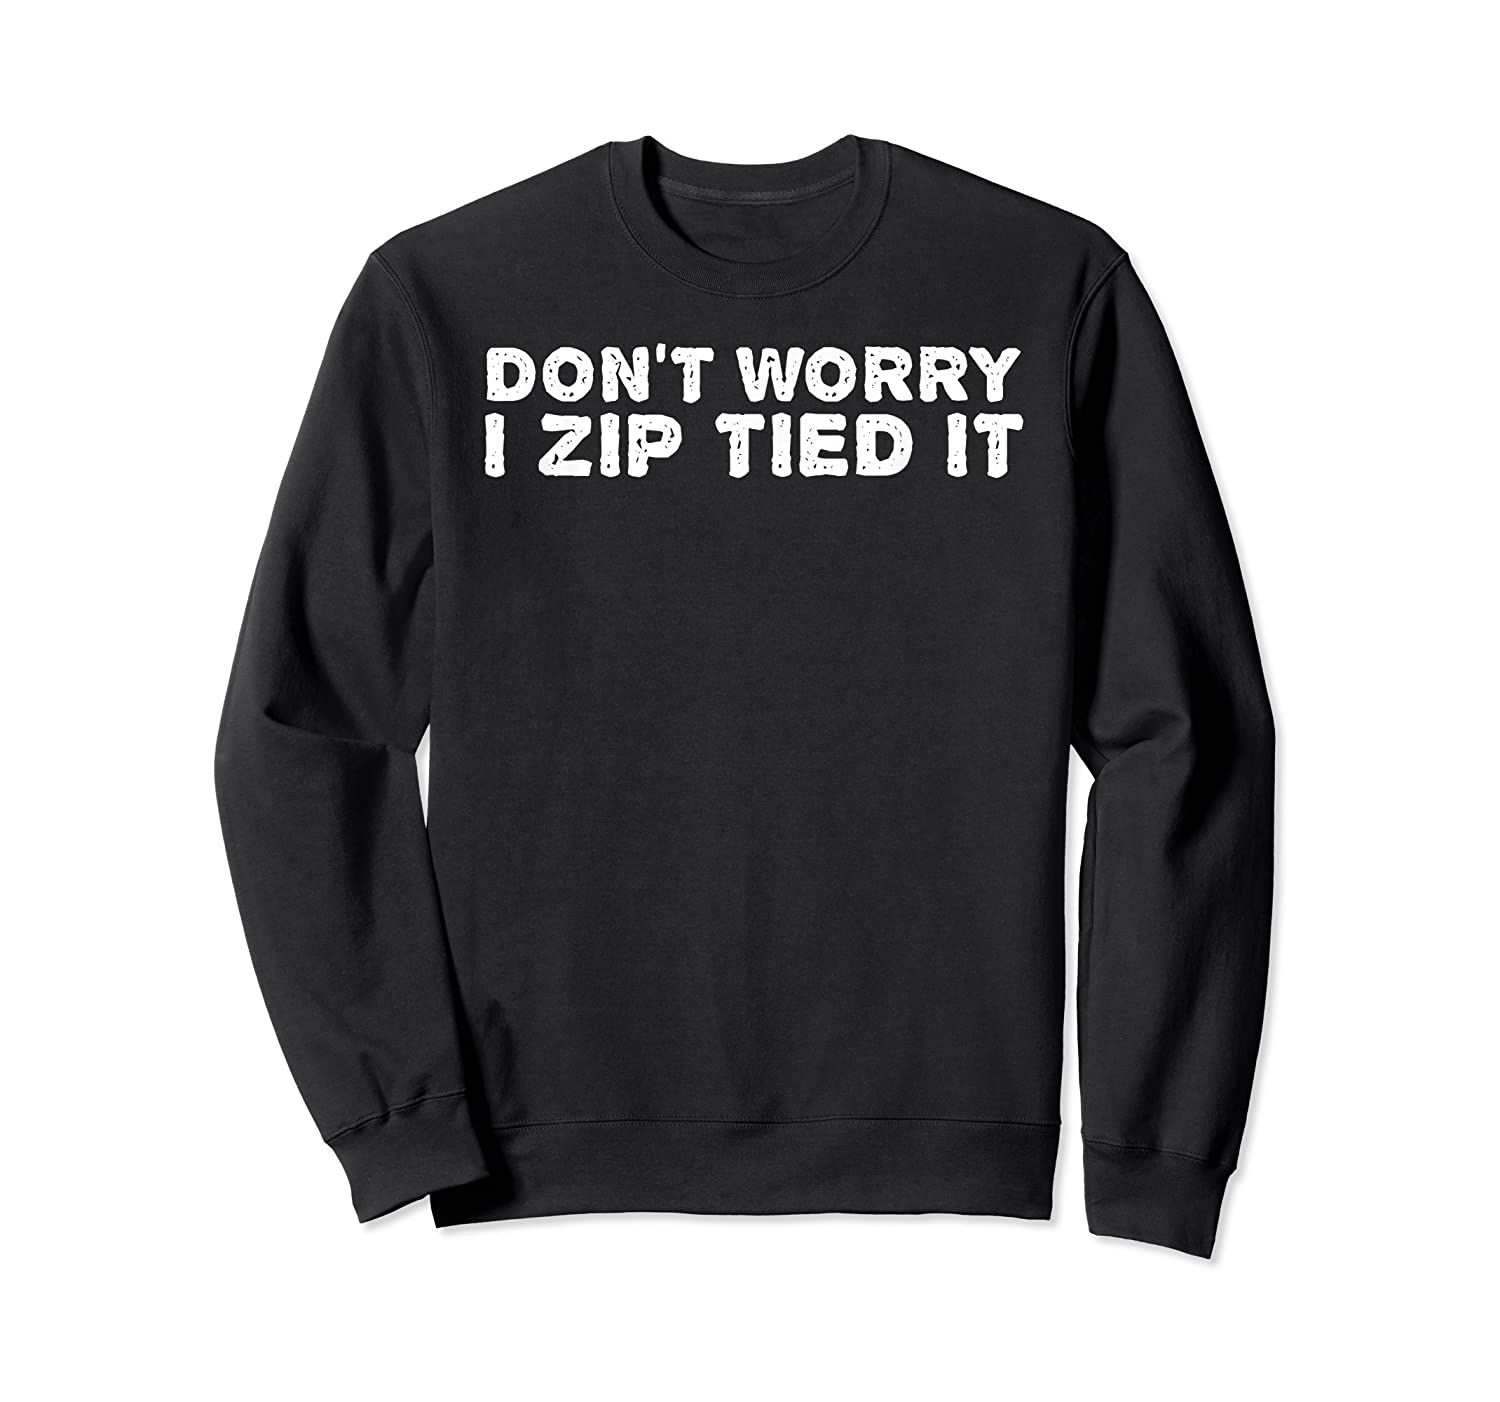 Don't Worry I Zip Tied I Funny Cable Tie Gift Idea Shirts Crewneck Sweater